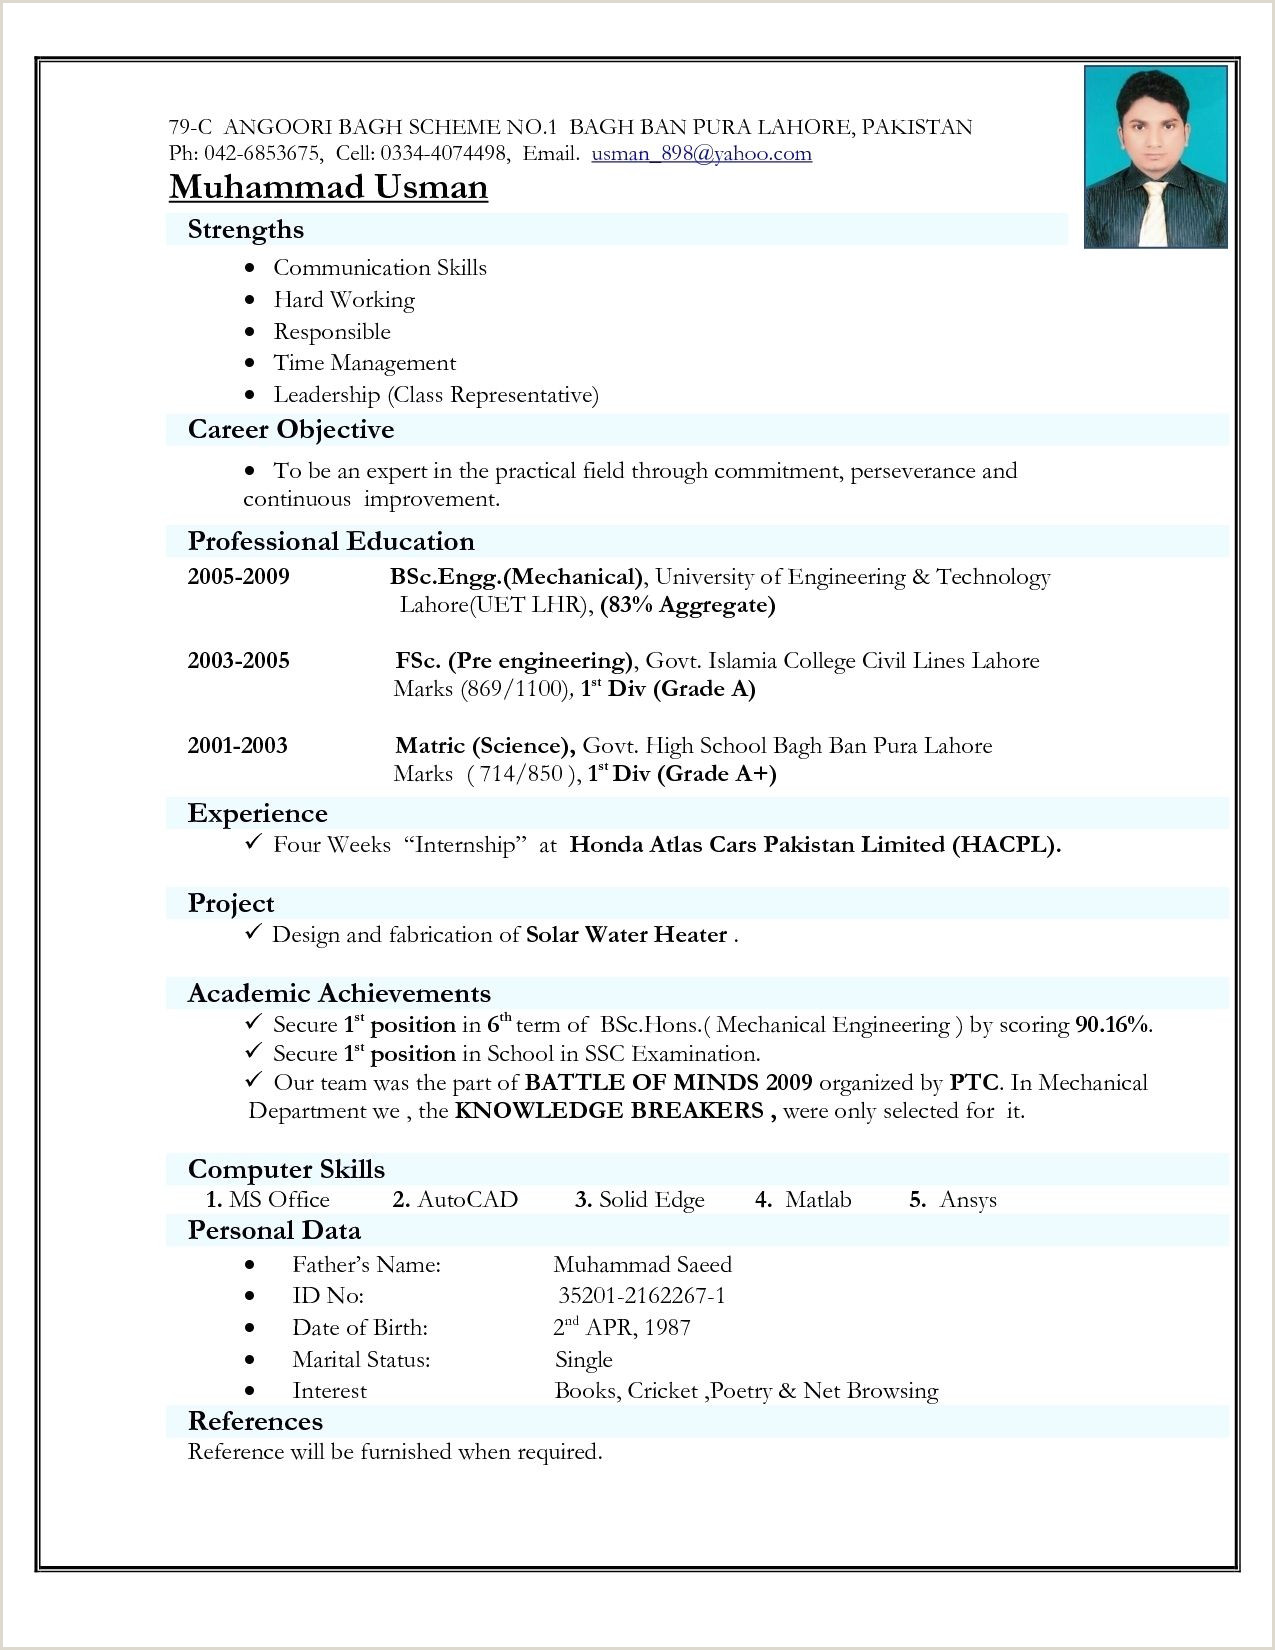 Resume Format India D